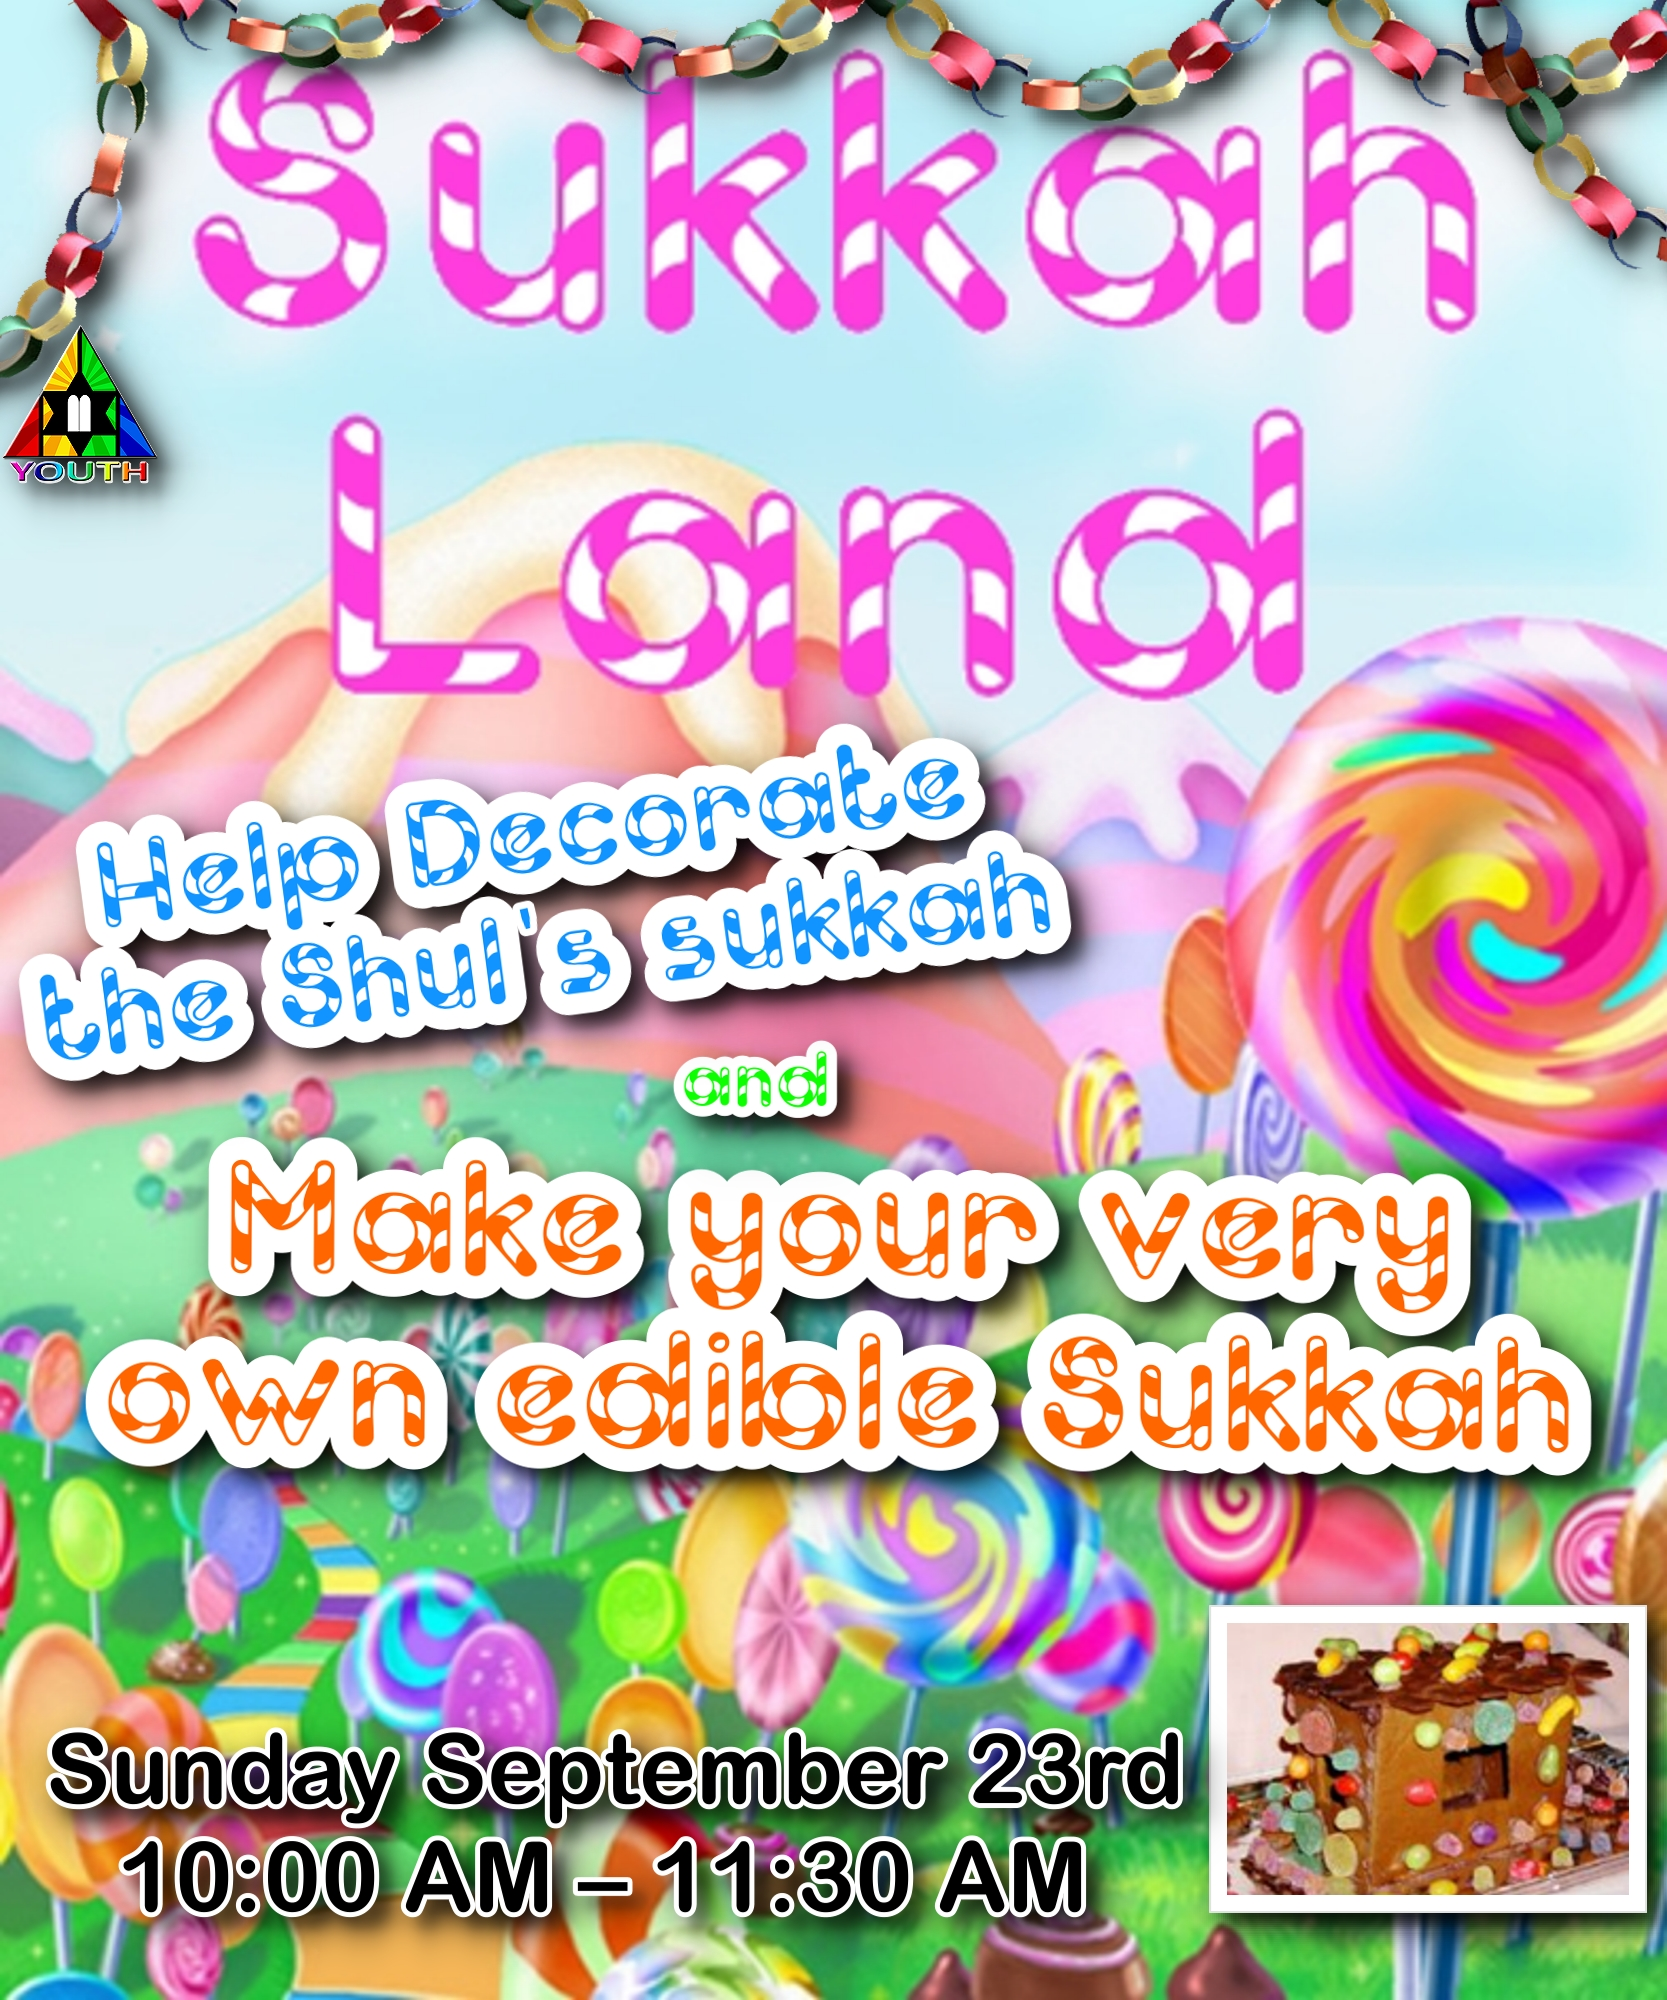 Erev Sukkot Decorating the Shul Sukkah - Event - Young Israel of